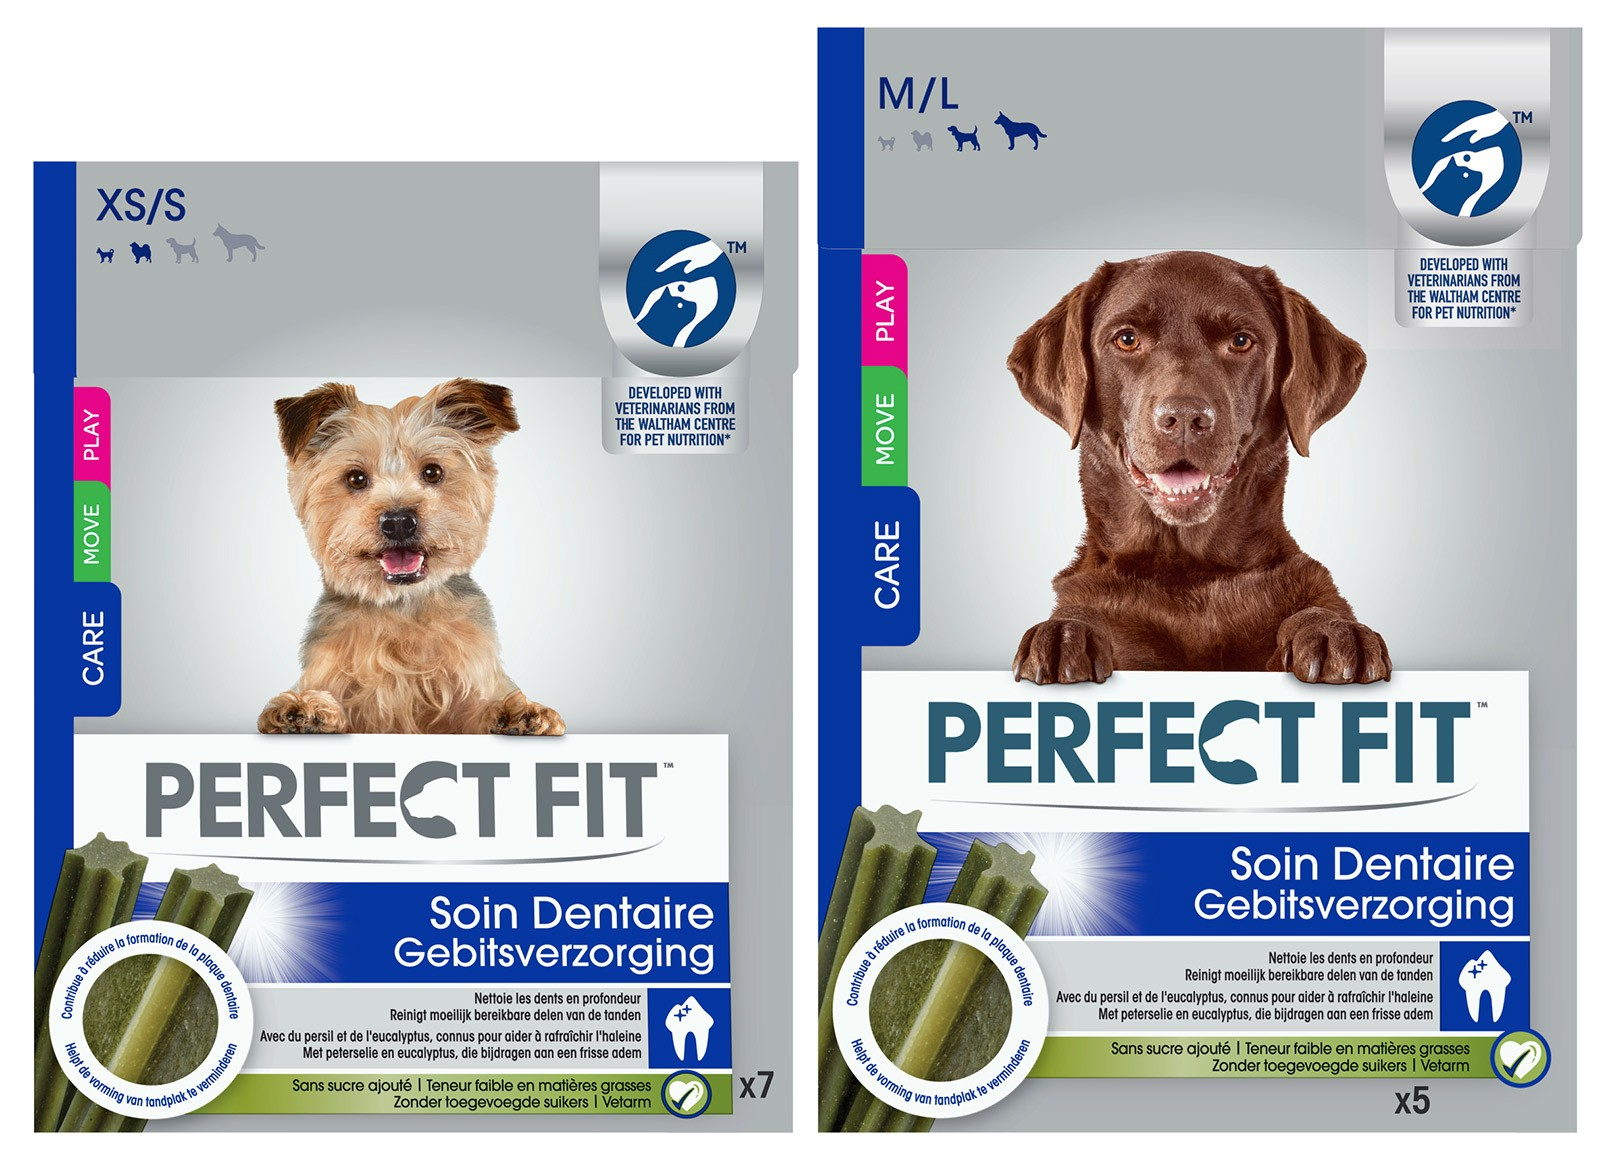 PERFECT FIT™ Soin Dentaire